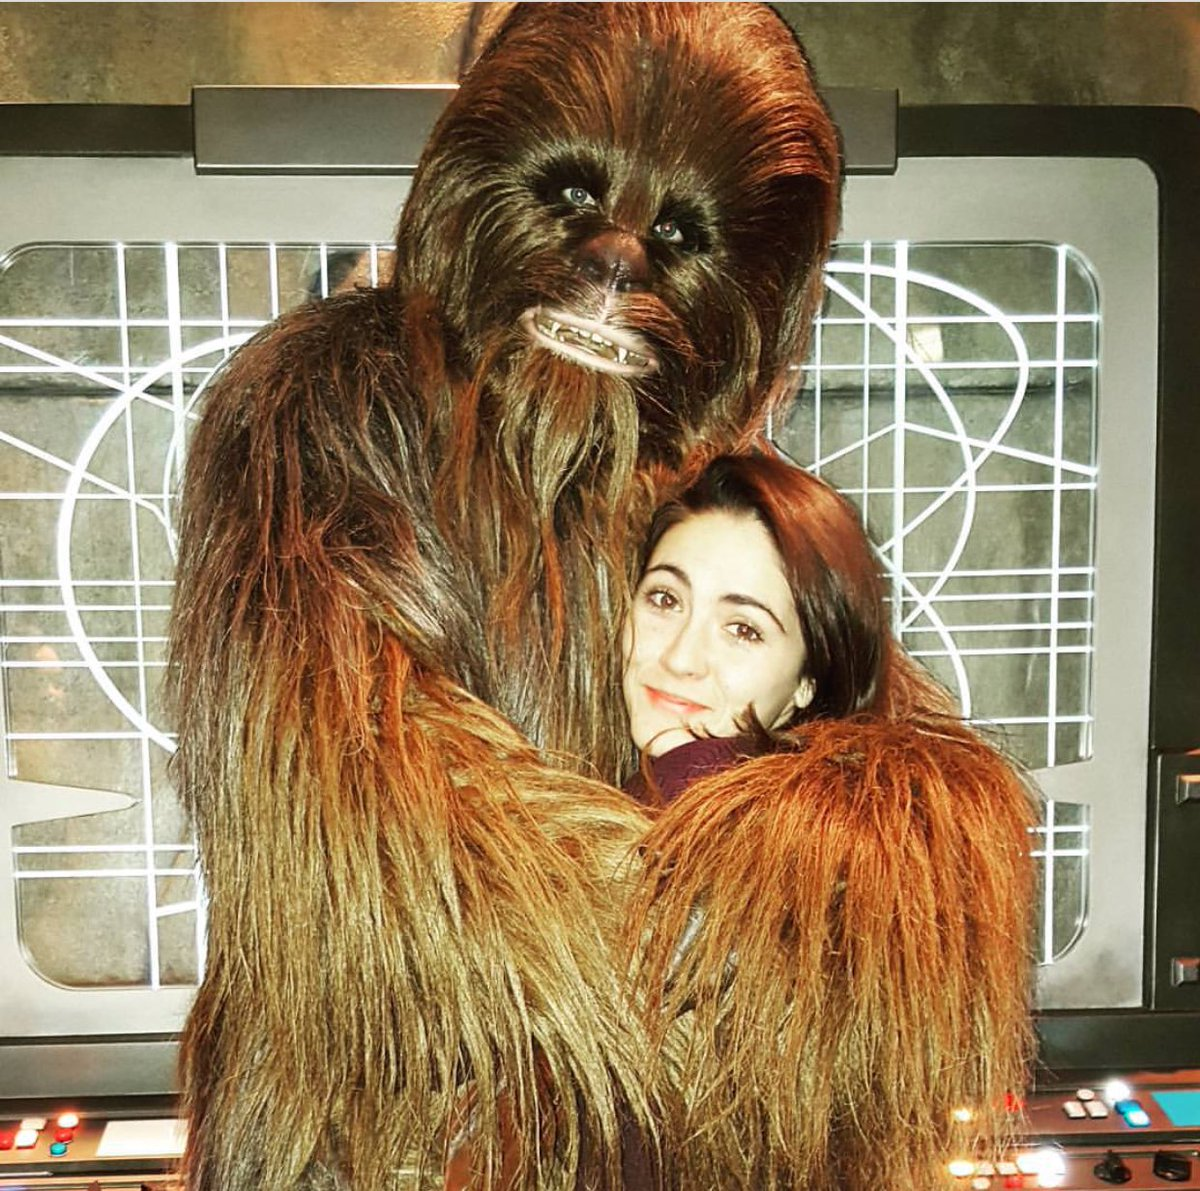 RT @isabellefuhrman: #SoloStarWars is the buddy comedy I always needed. #hansolo and #Chewbacca forever ❤️ https://t.co/W1gA4yERAP